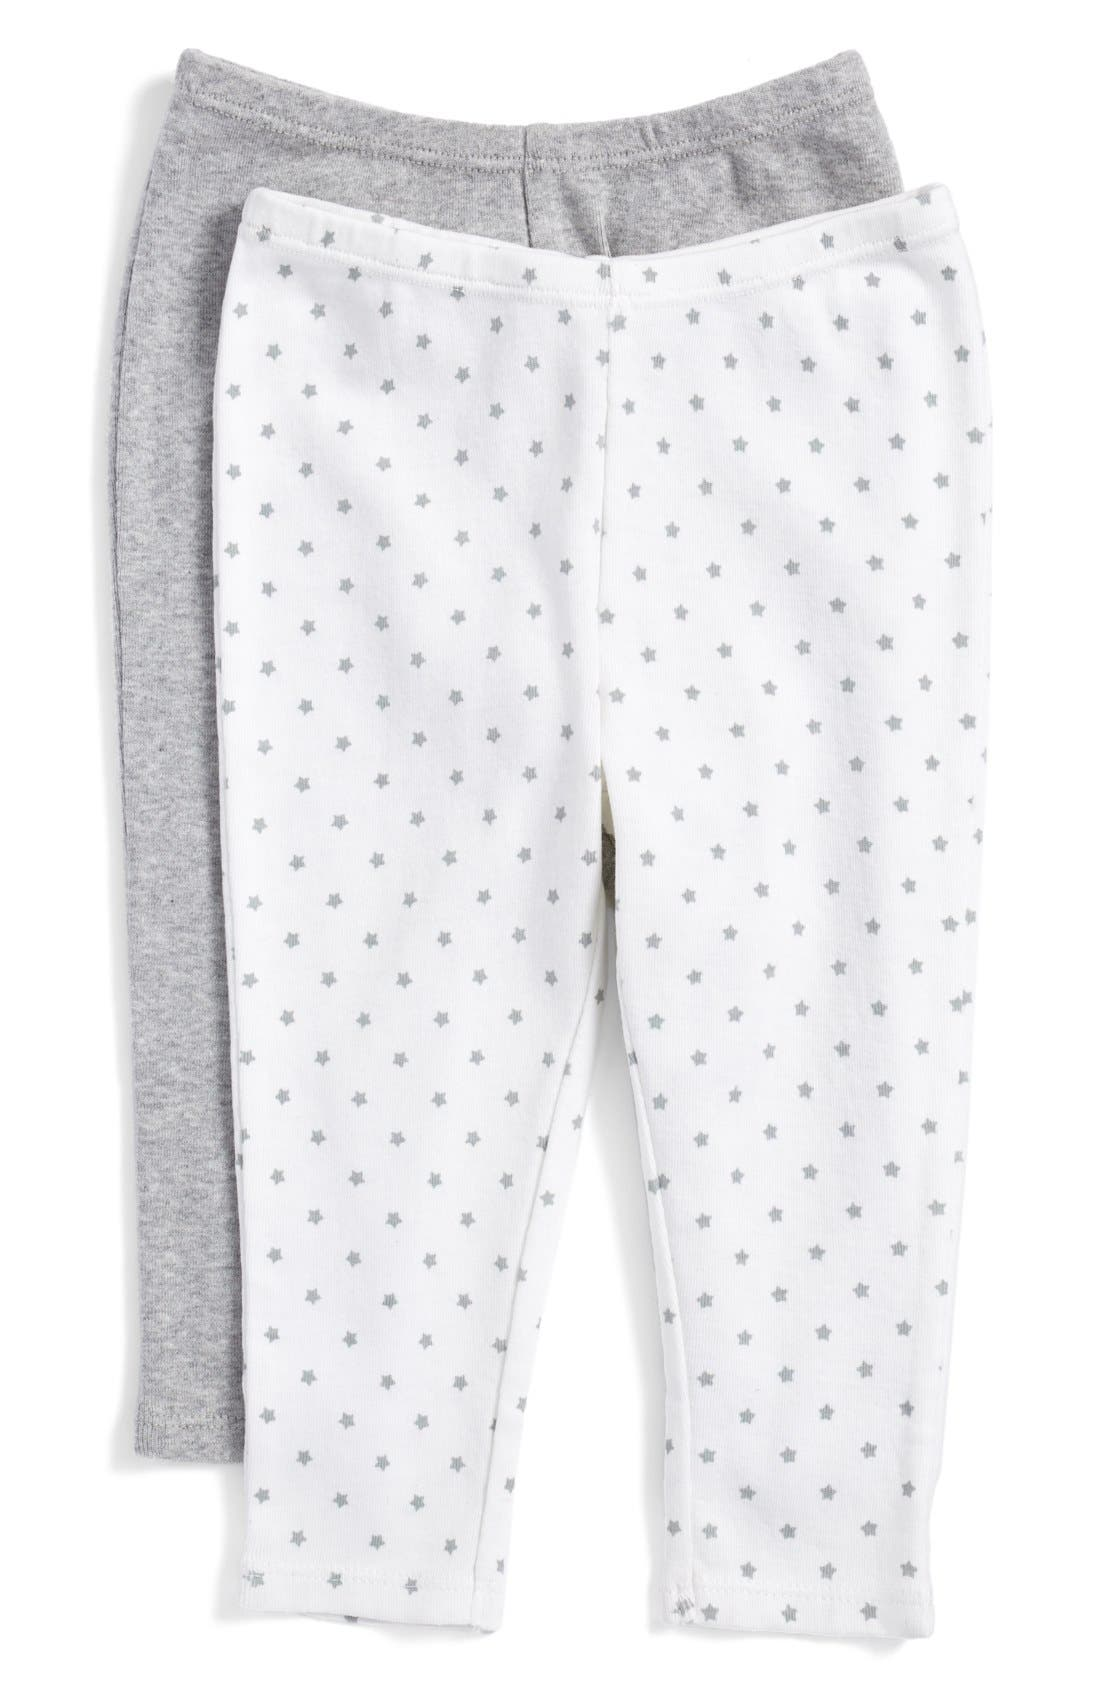 NORDSTROM BABY, Cotton Pants, Main thumbnail 1, color, GREY ASH HEATHER STAR PACK